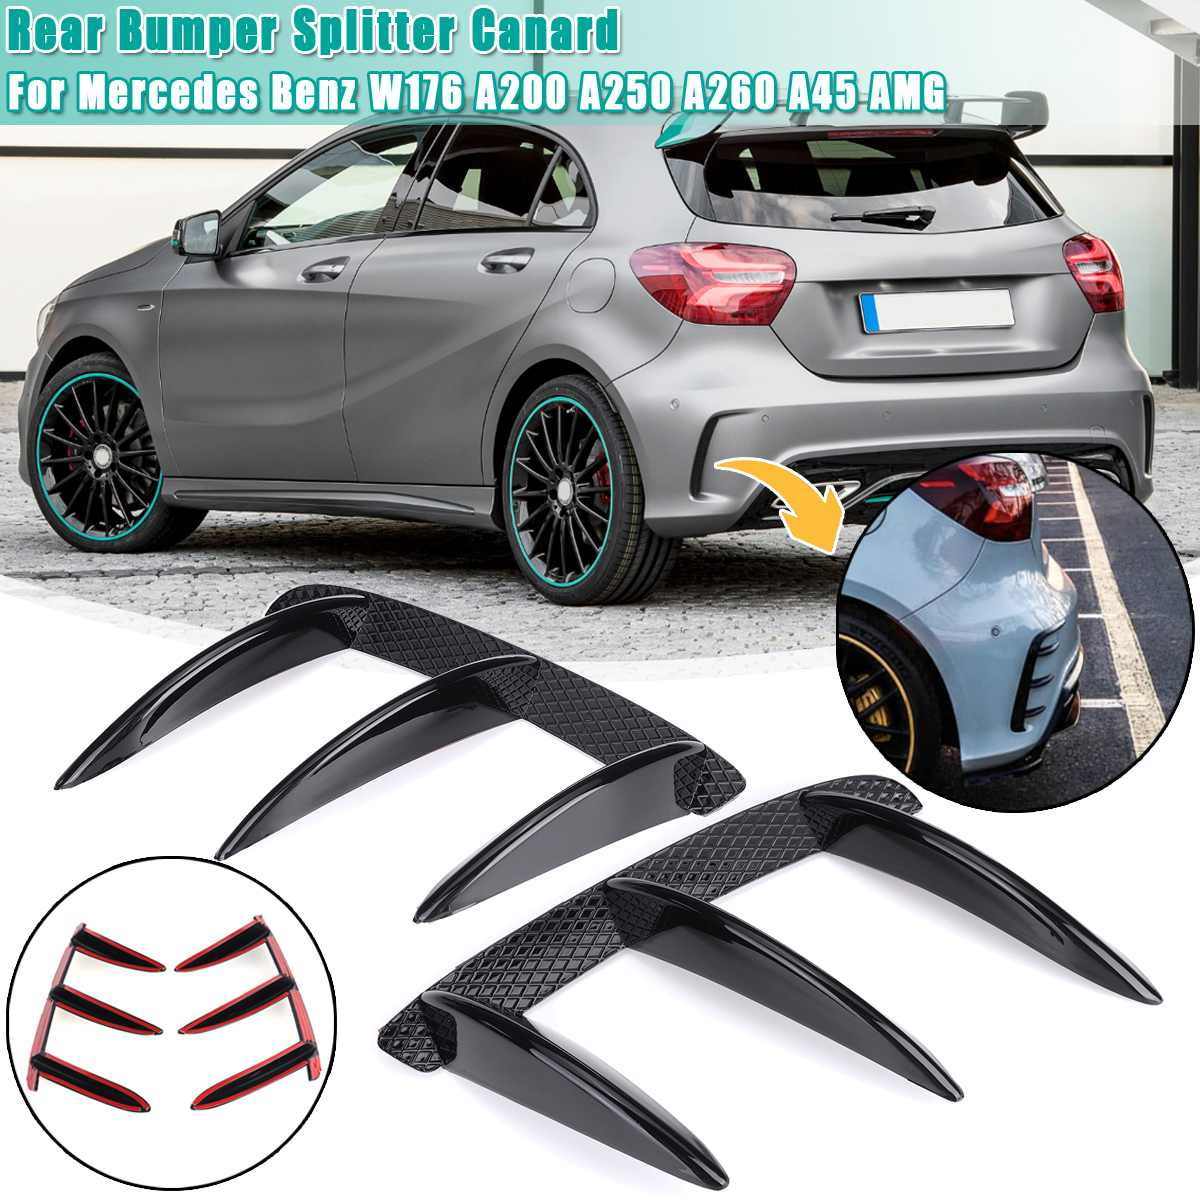 2PCS W176 Splitter Rear Bumper Canards Spoiler For Mercedes for Benz W176 A200 A250 A260 A45 for AMG Package ABS Black